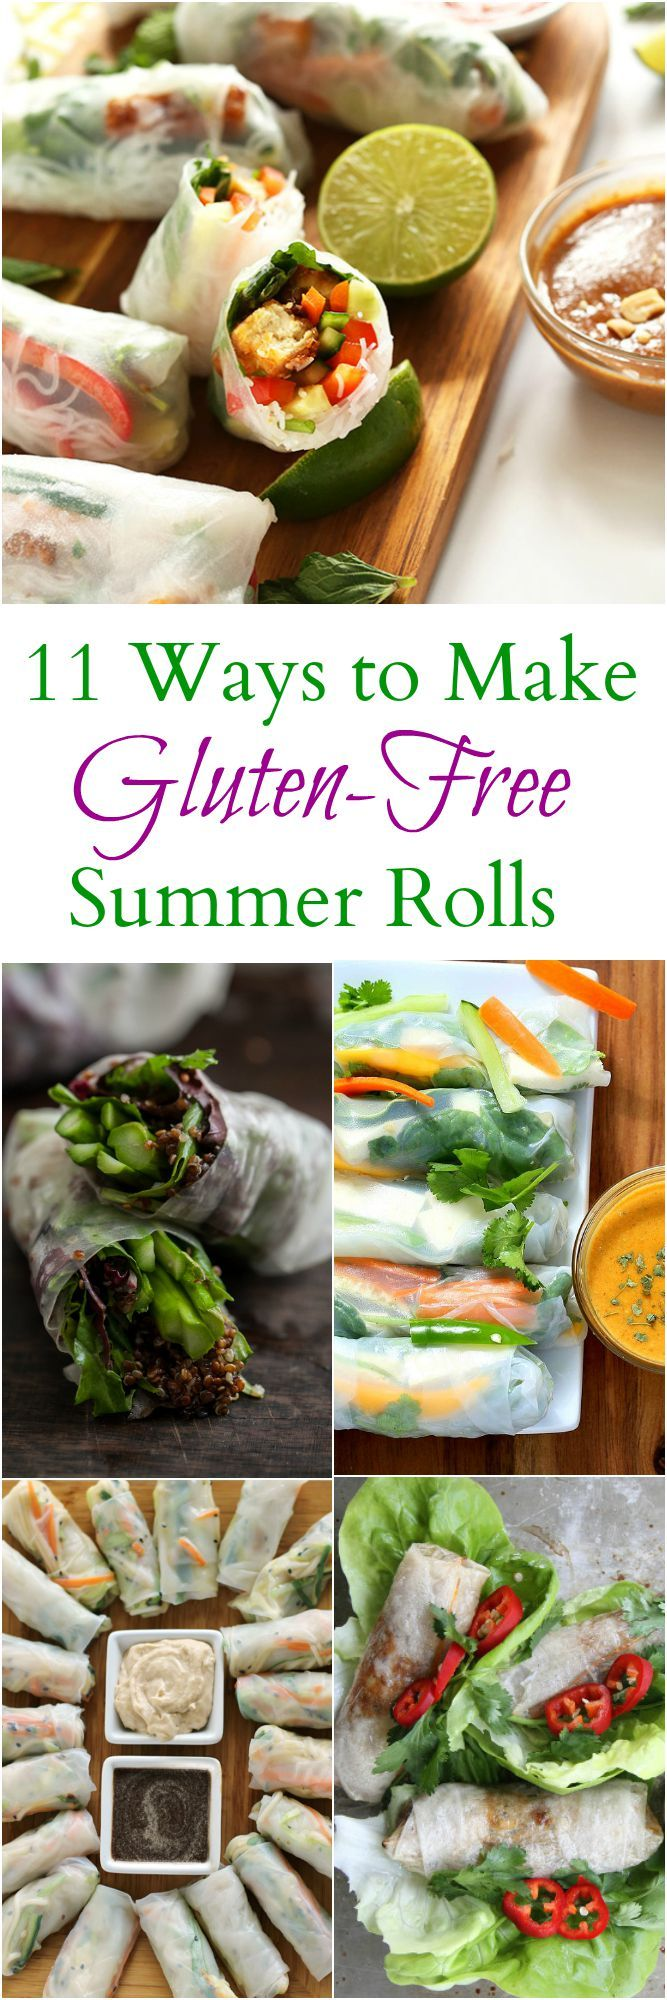 11 delicious, creative ways to make #glutenfree Spring Rolls and Summer Rolls l StephinThyme for About.com Food